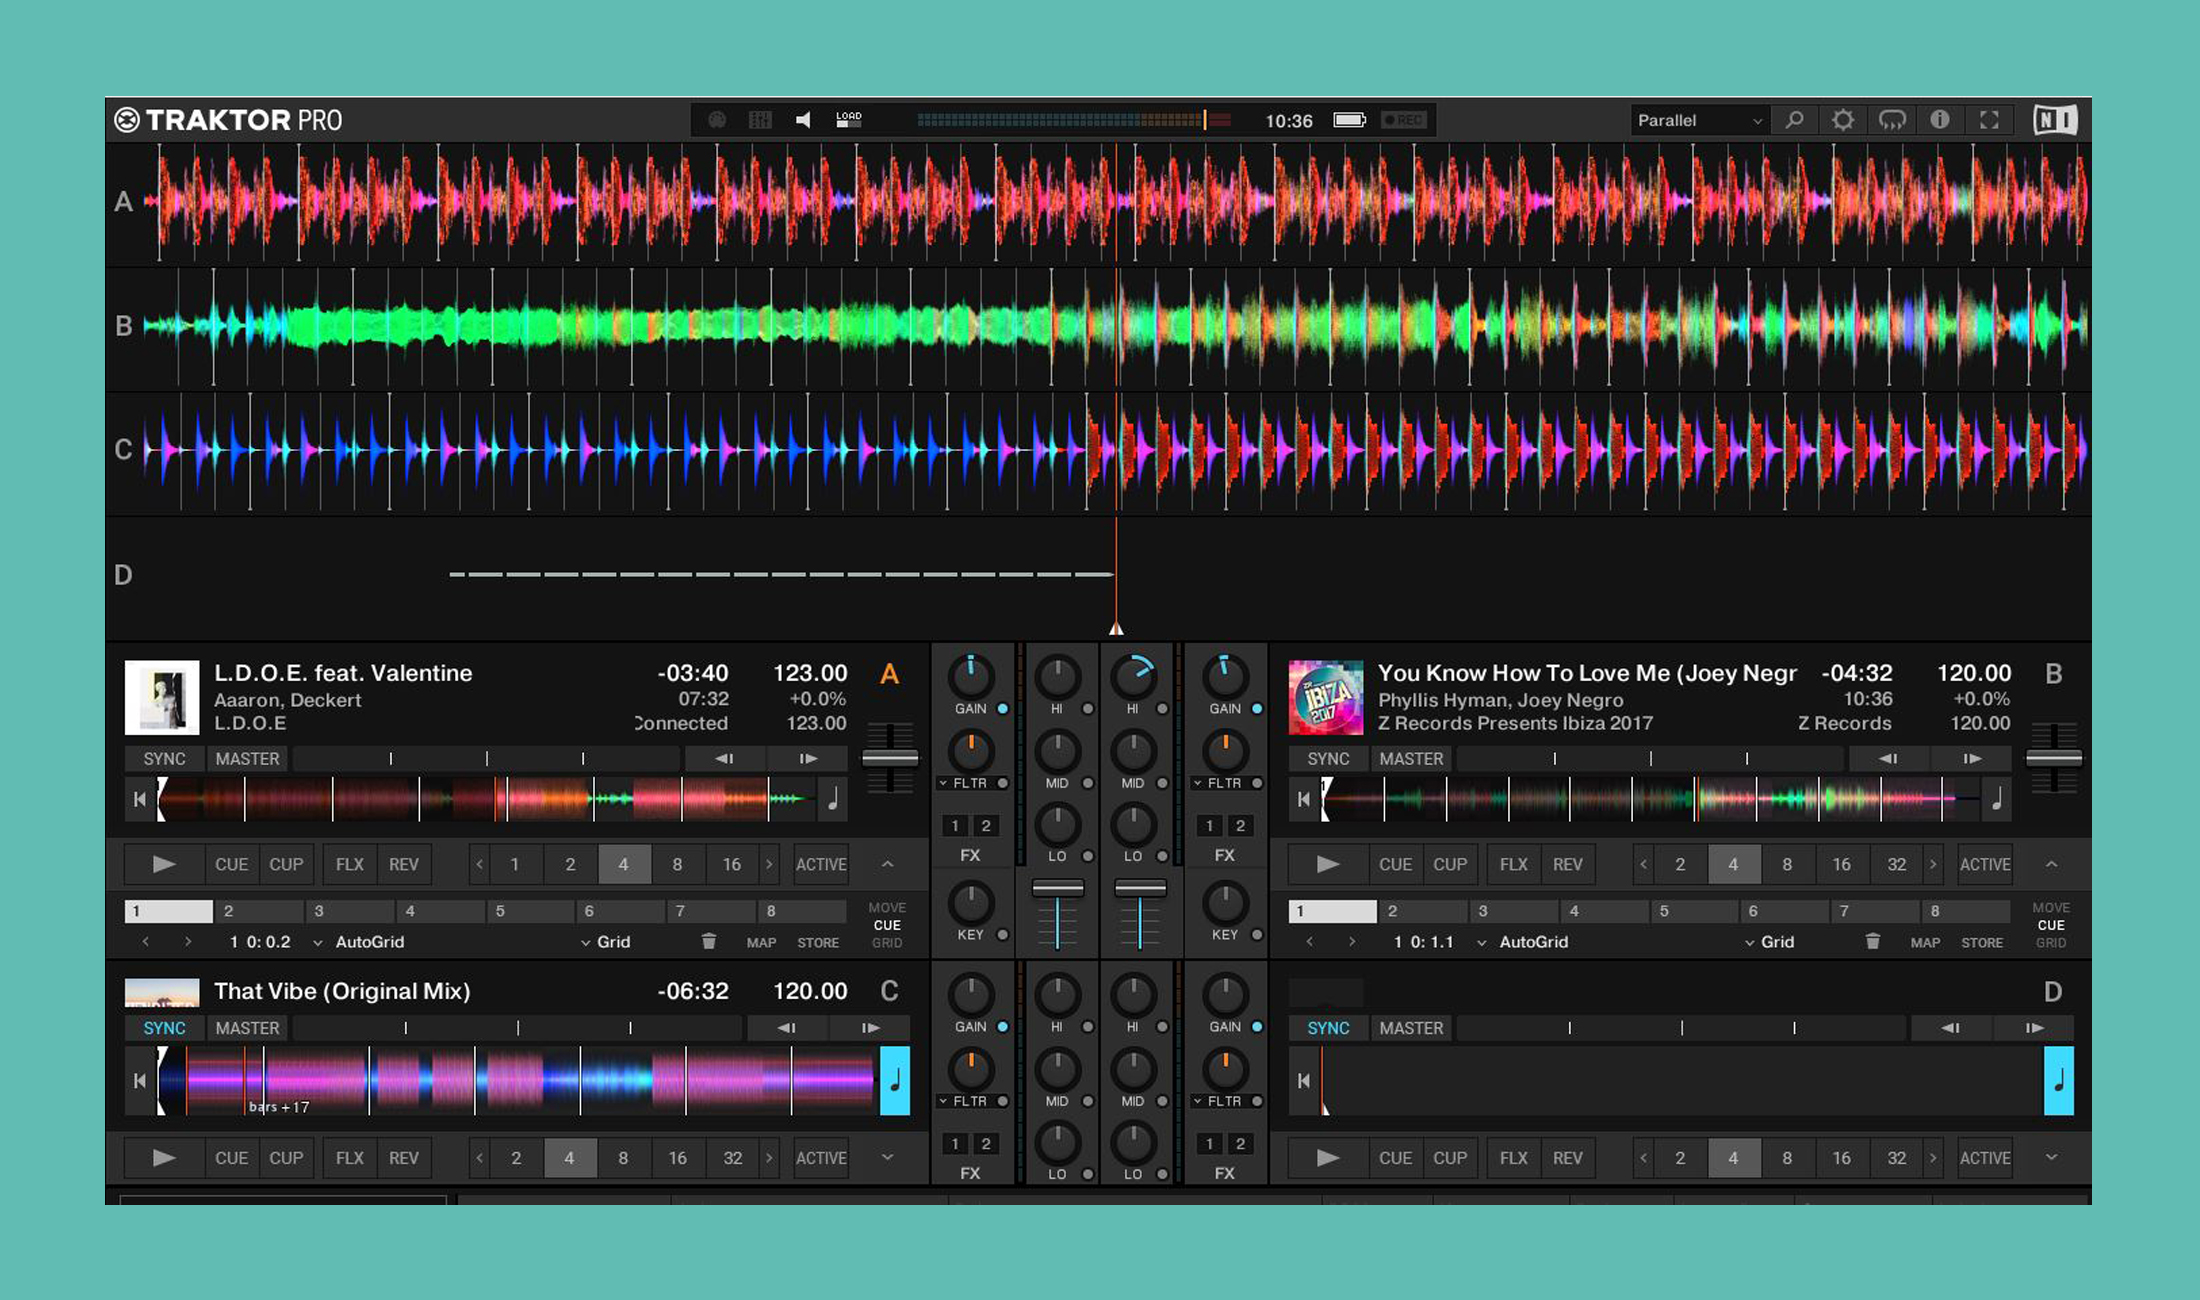 Native Instruments Traktor Pro 3.1 Update führt parallele Wellenformen ein